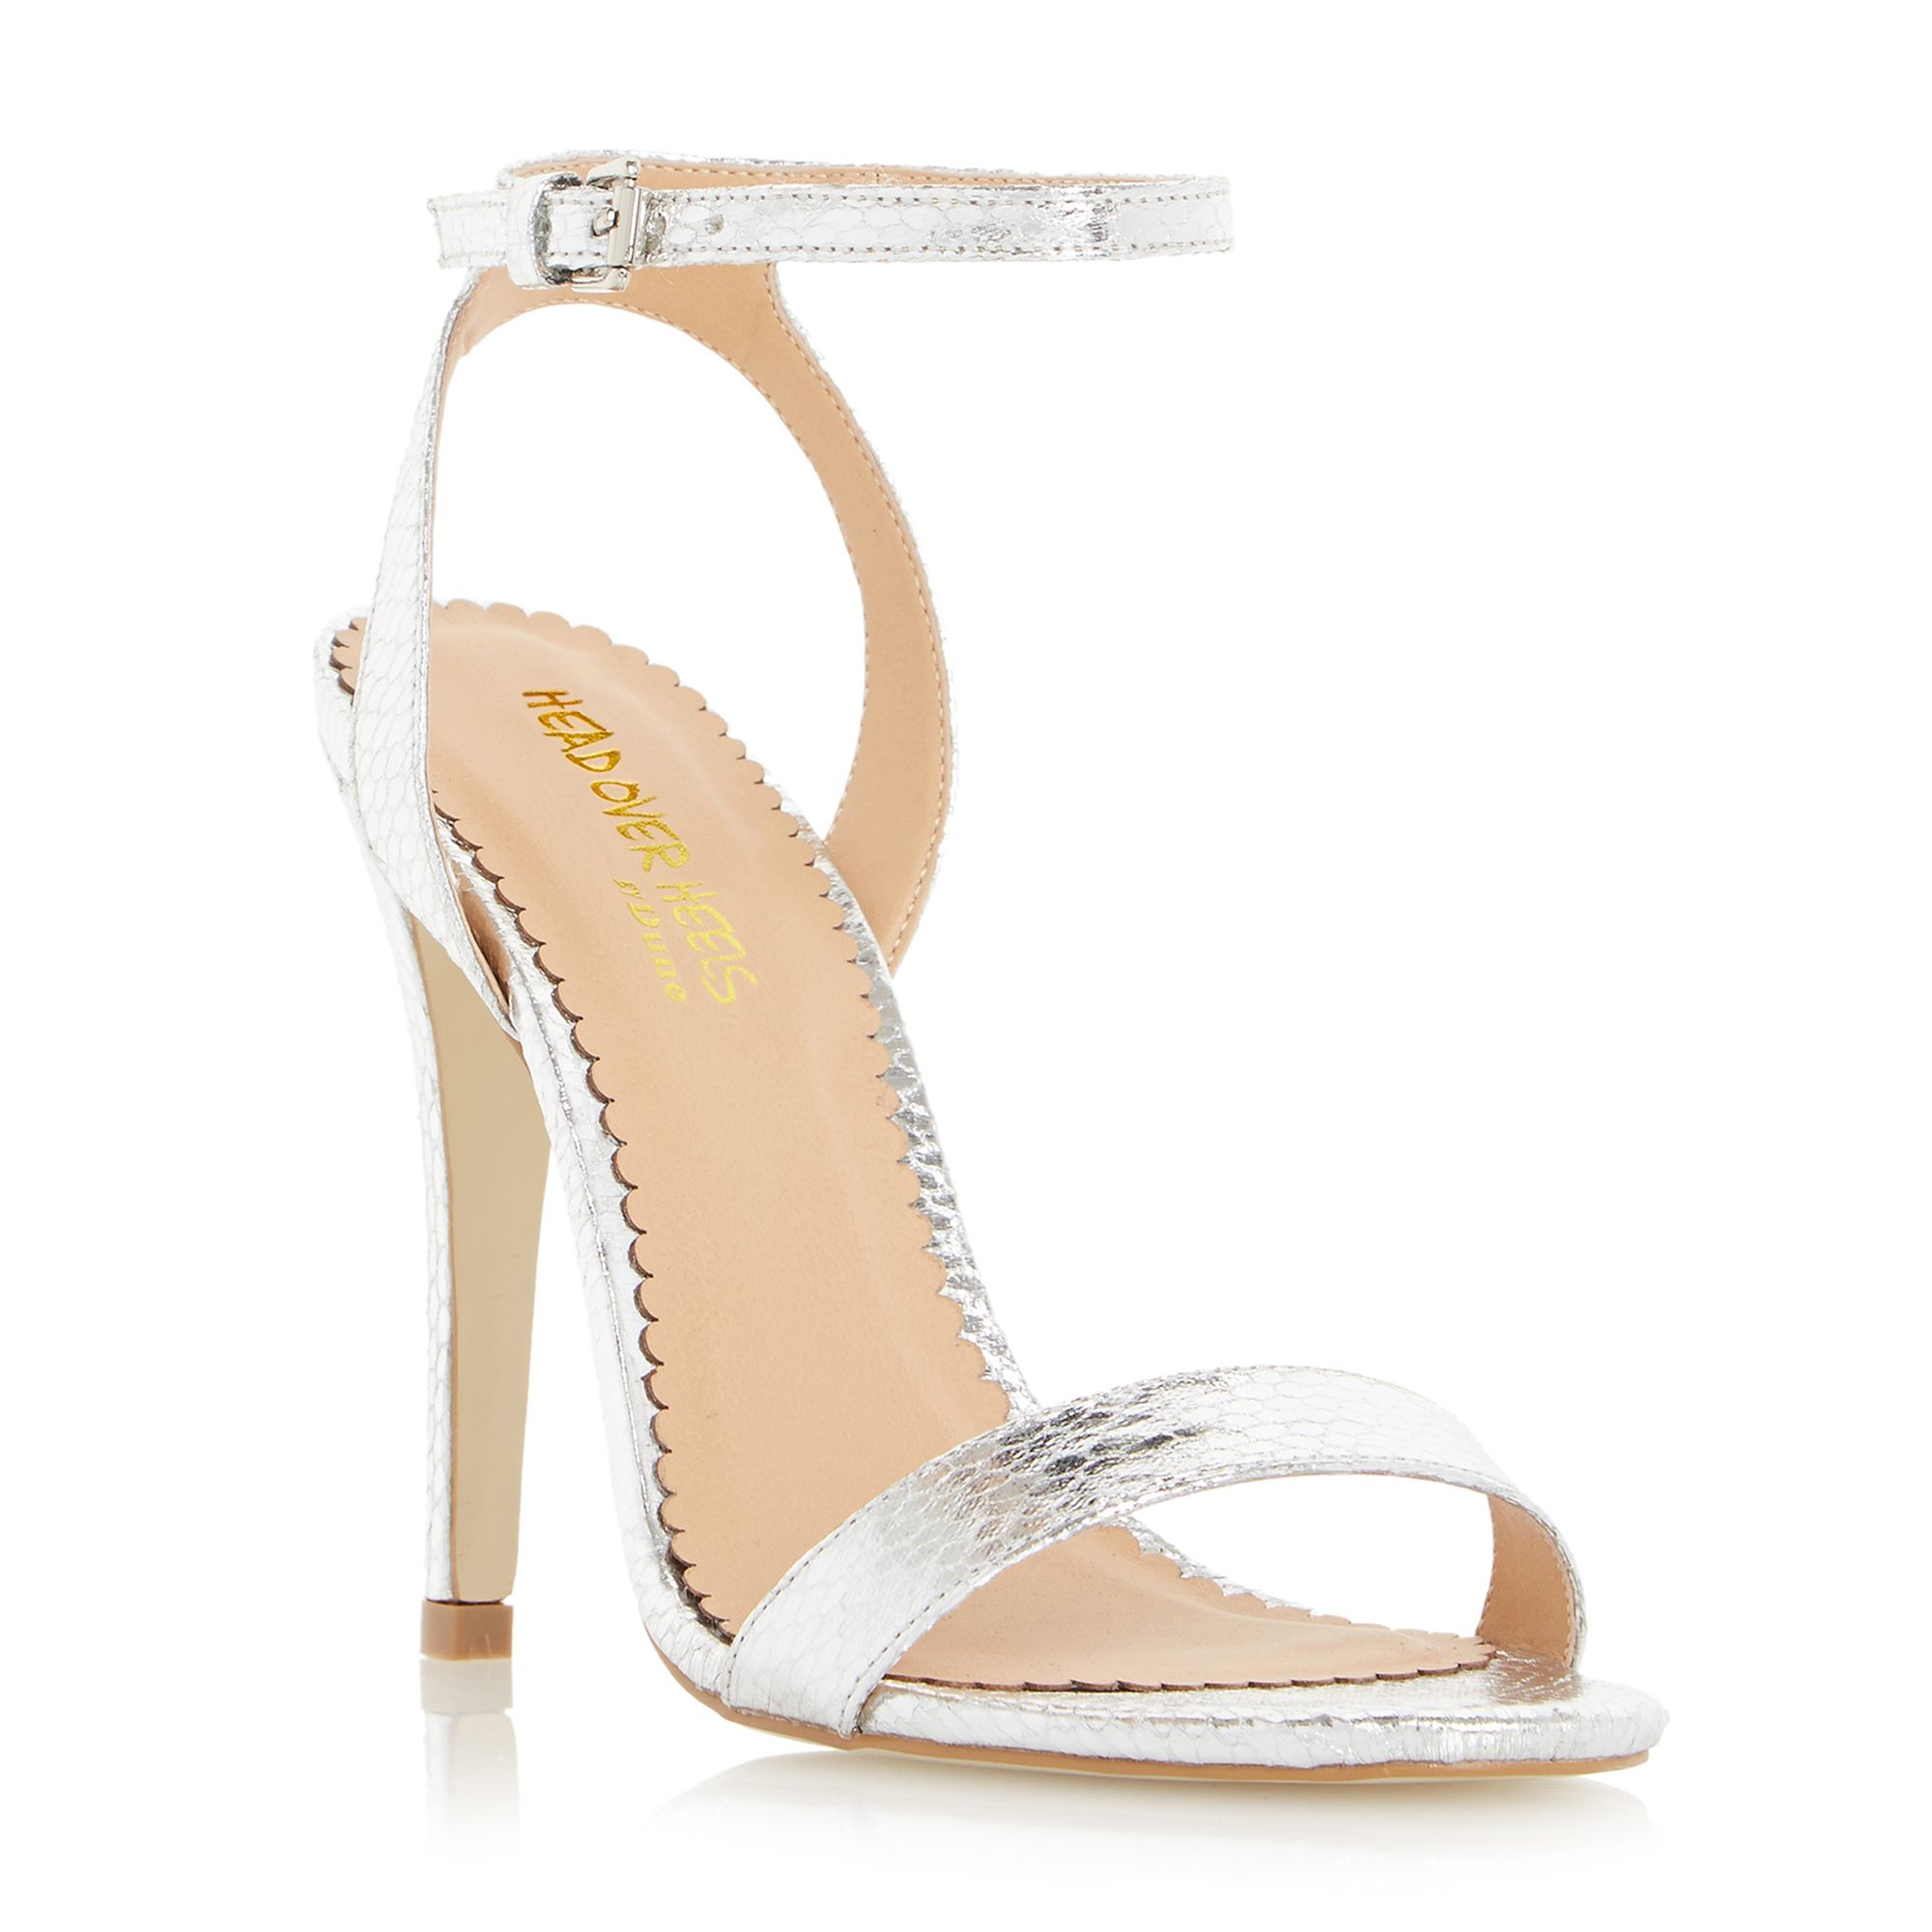 Silver Strappy High Heel Sandals - Is Heel